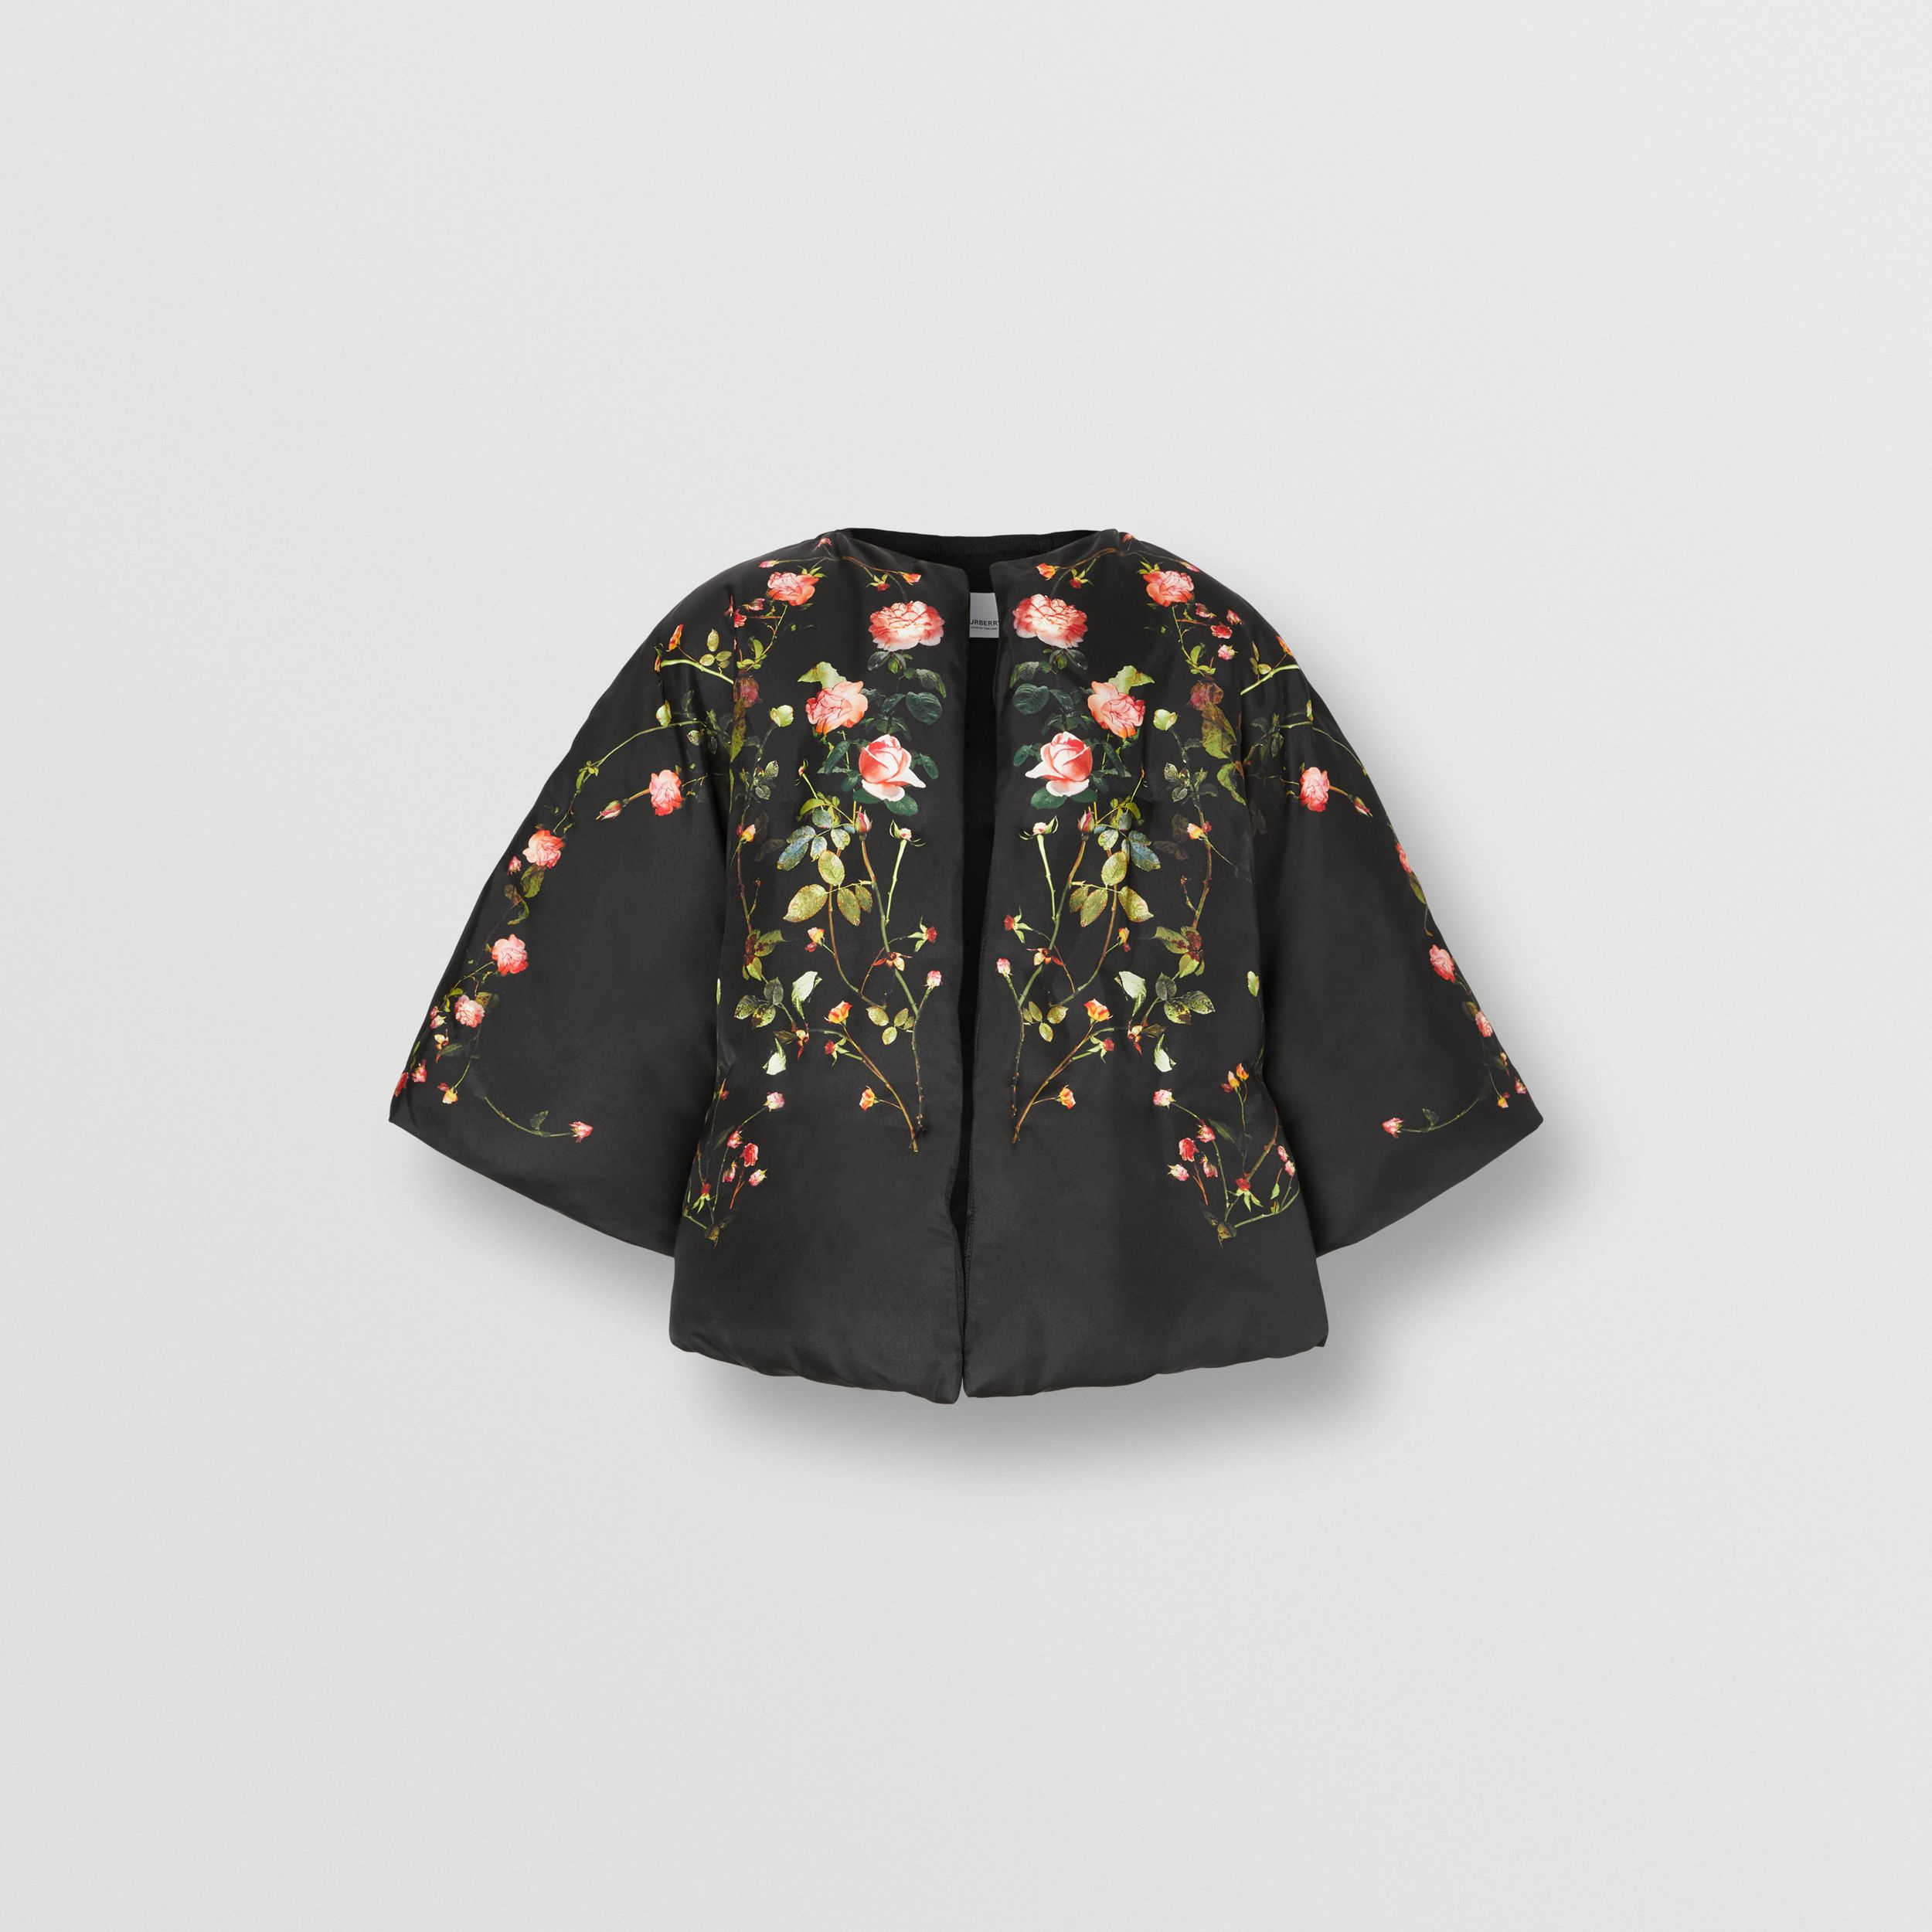 Rose Print Silk Cape in Black - Women | Burberry - 4